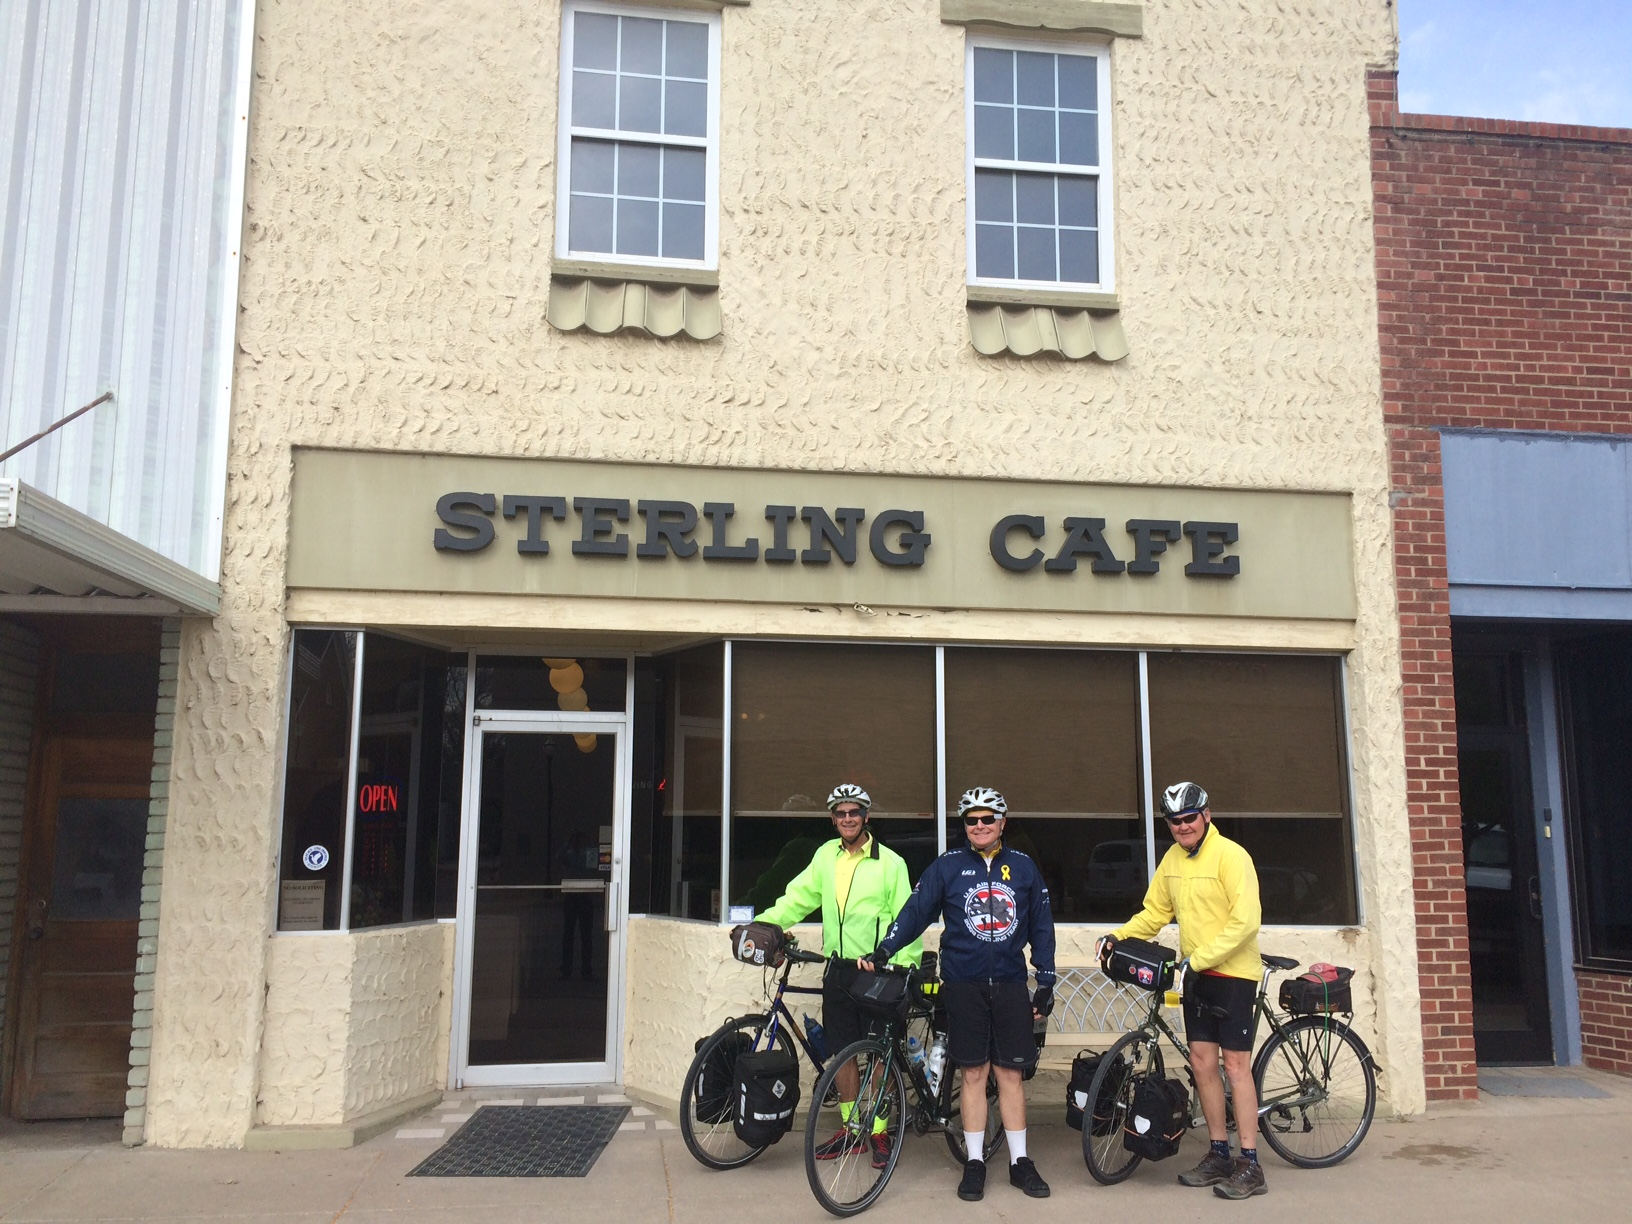 Cyclists at Sterling Cafe